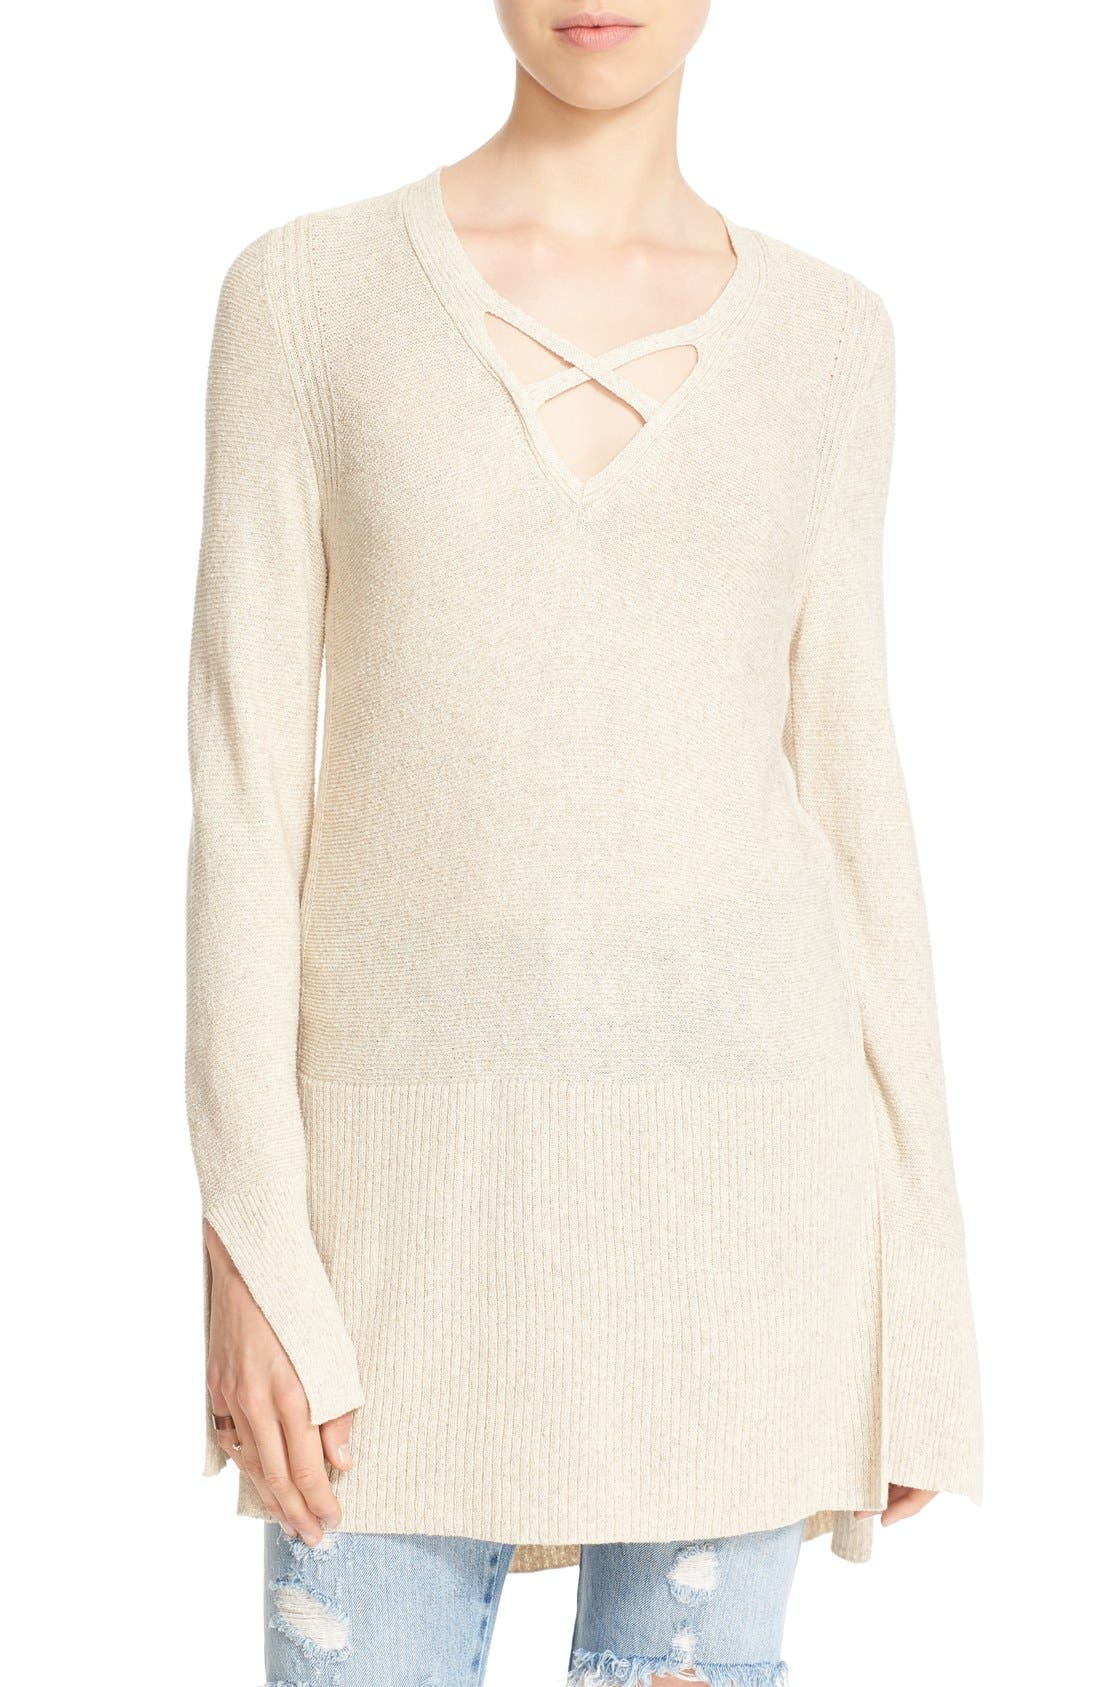 Alternate Image 1 Selected - Free People Crisscross Sweater